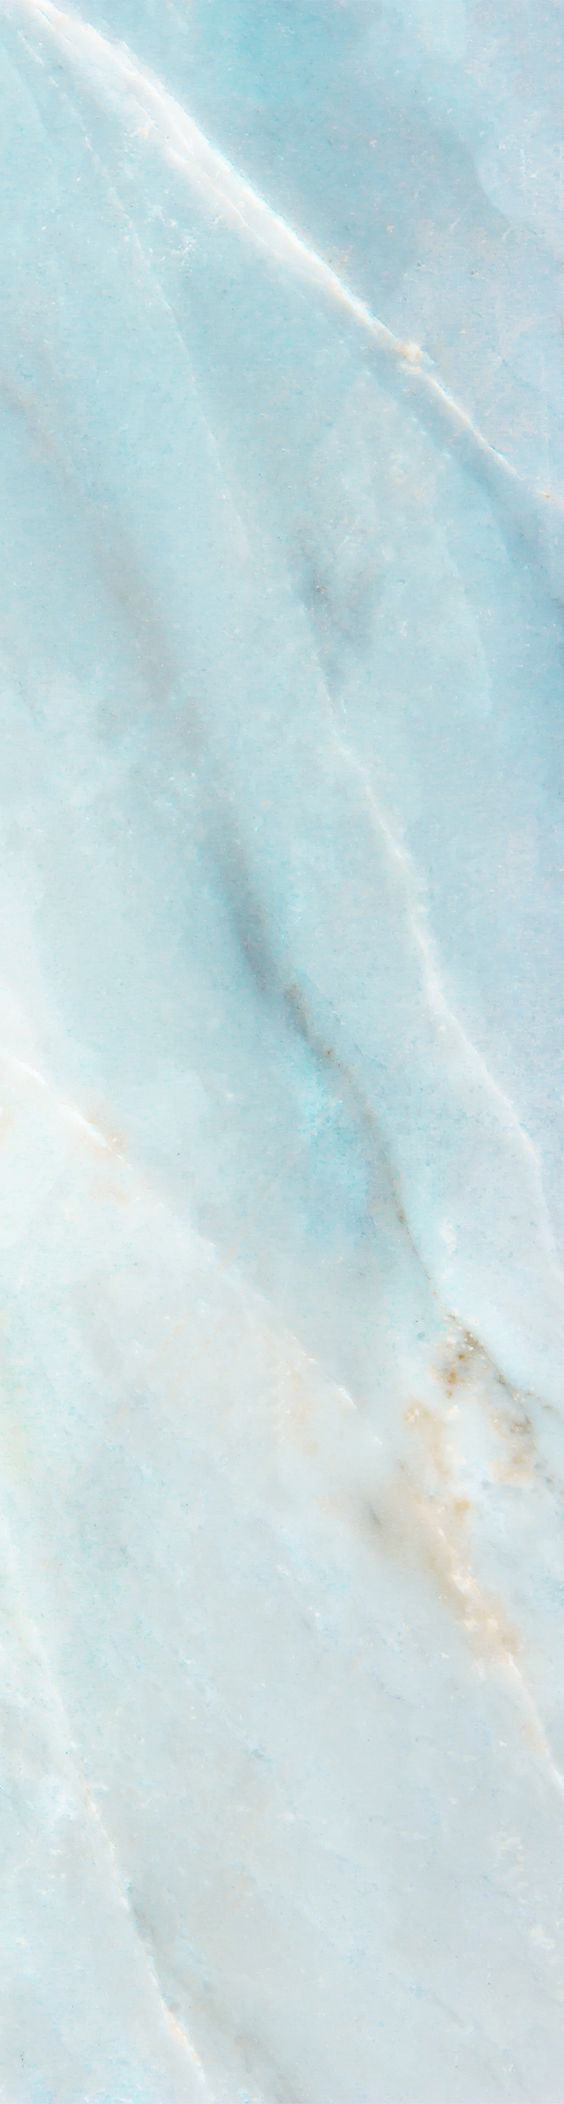 Great Wallpaper Marble Turquoise - 8593d9282069ba074769f14050e3194f  Pic_82683.jpg